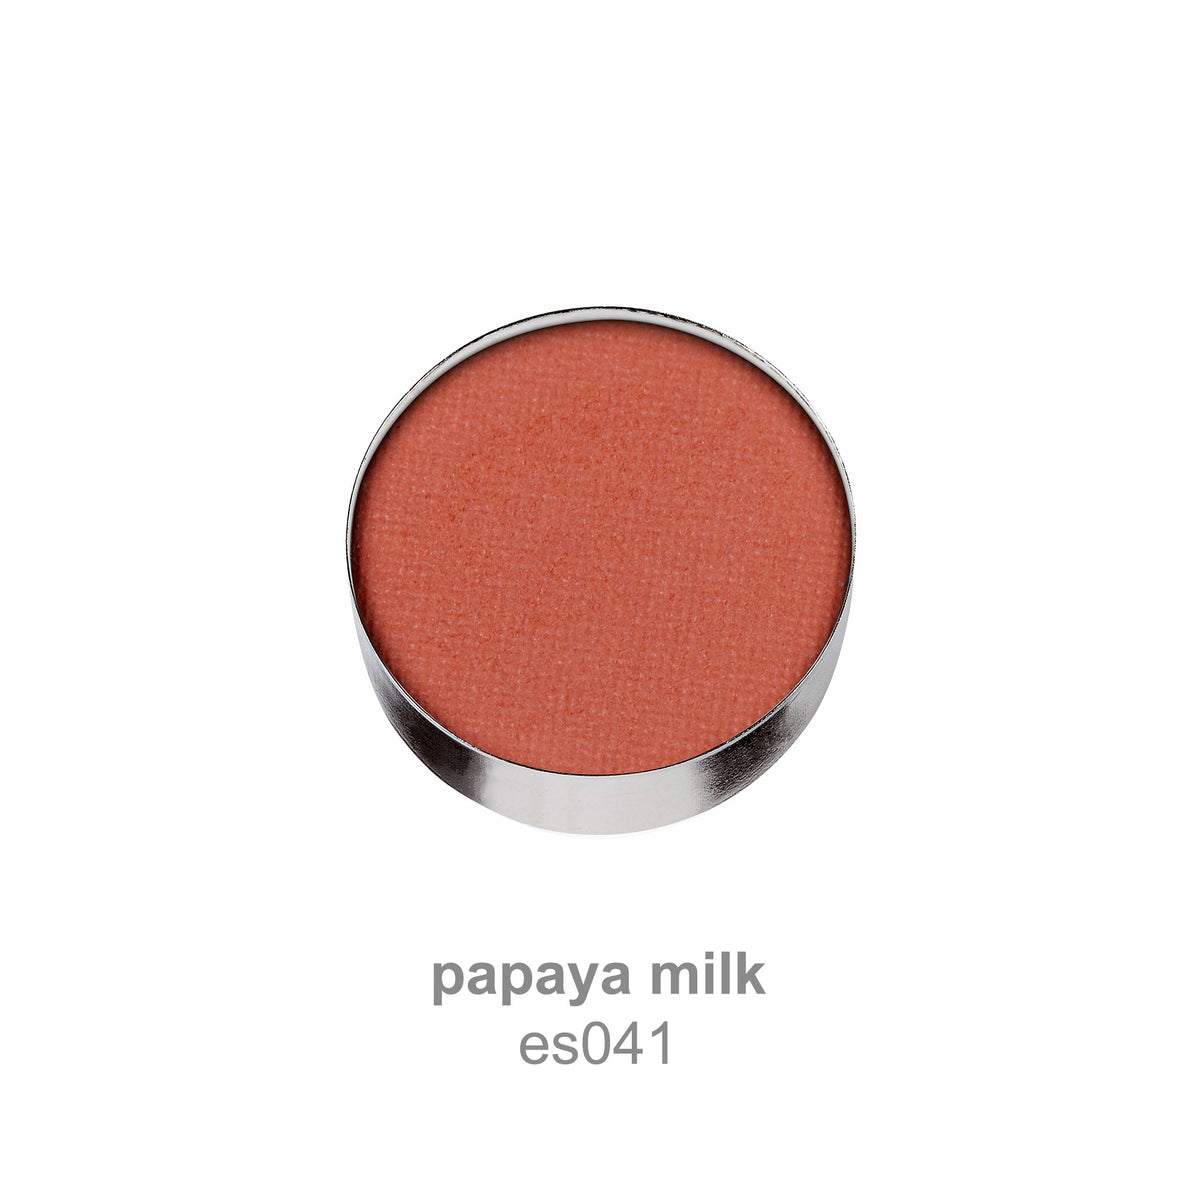 papaya milk (es041)